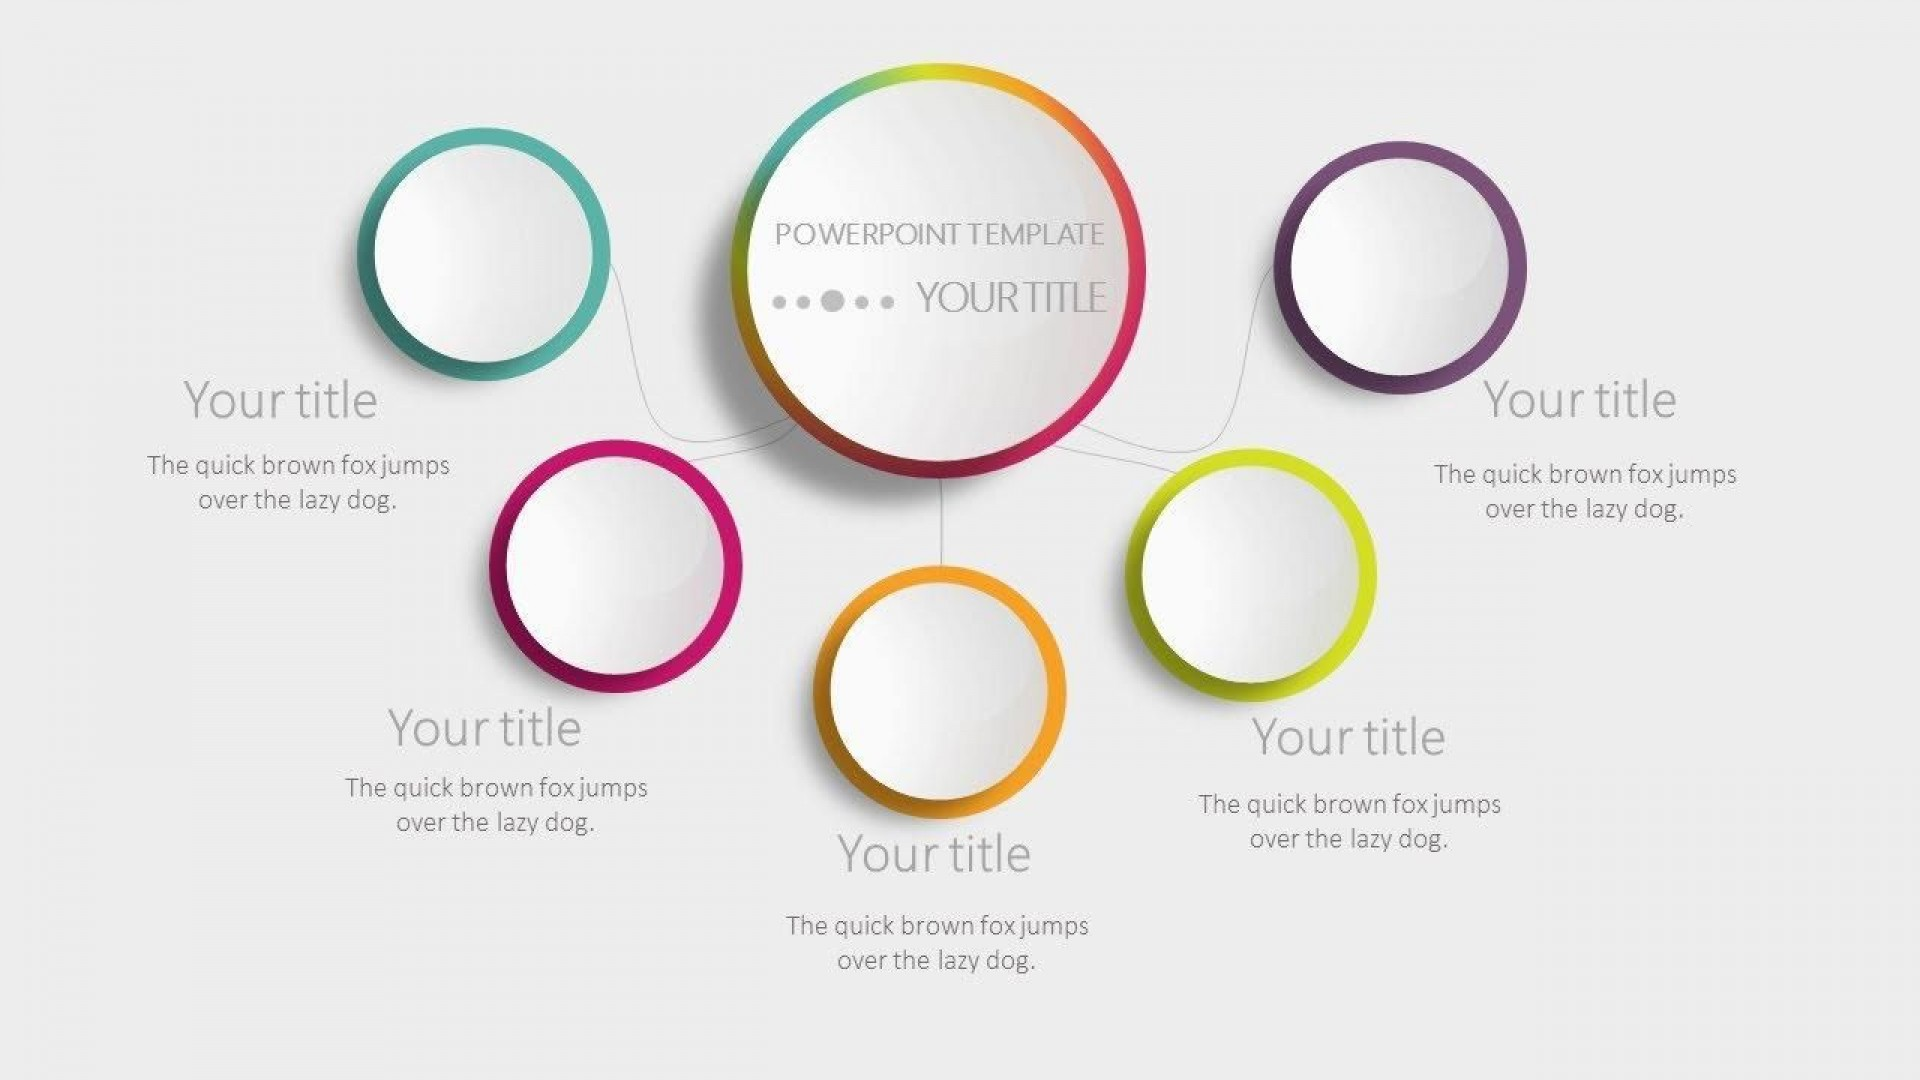 004 Outstanding Animation Powerpoint Template Free Download Idea  3d Animated 2016 Microsoft 2007 20141920